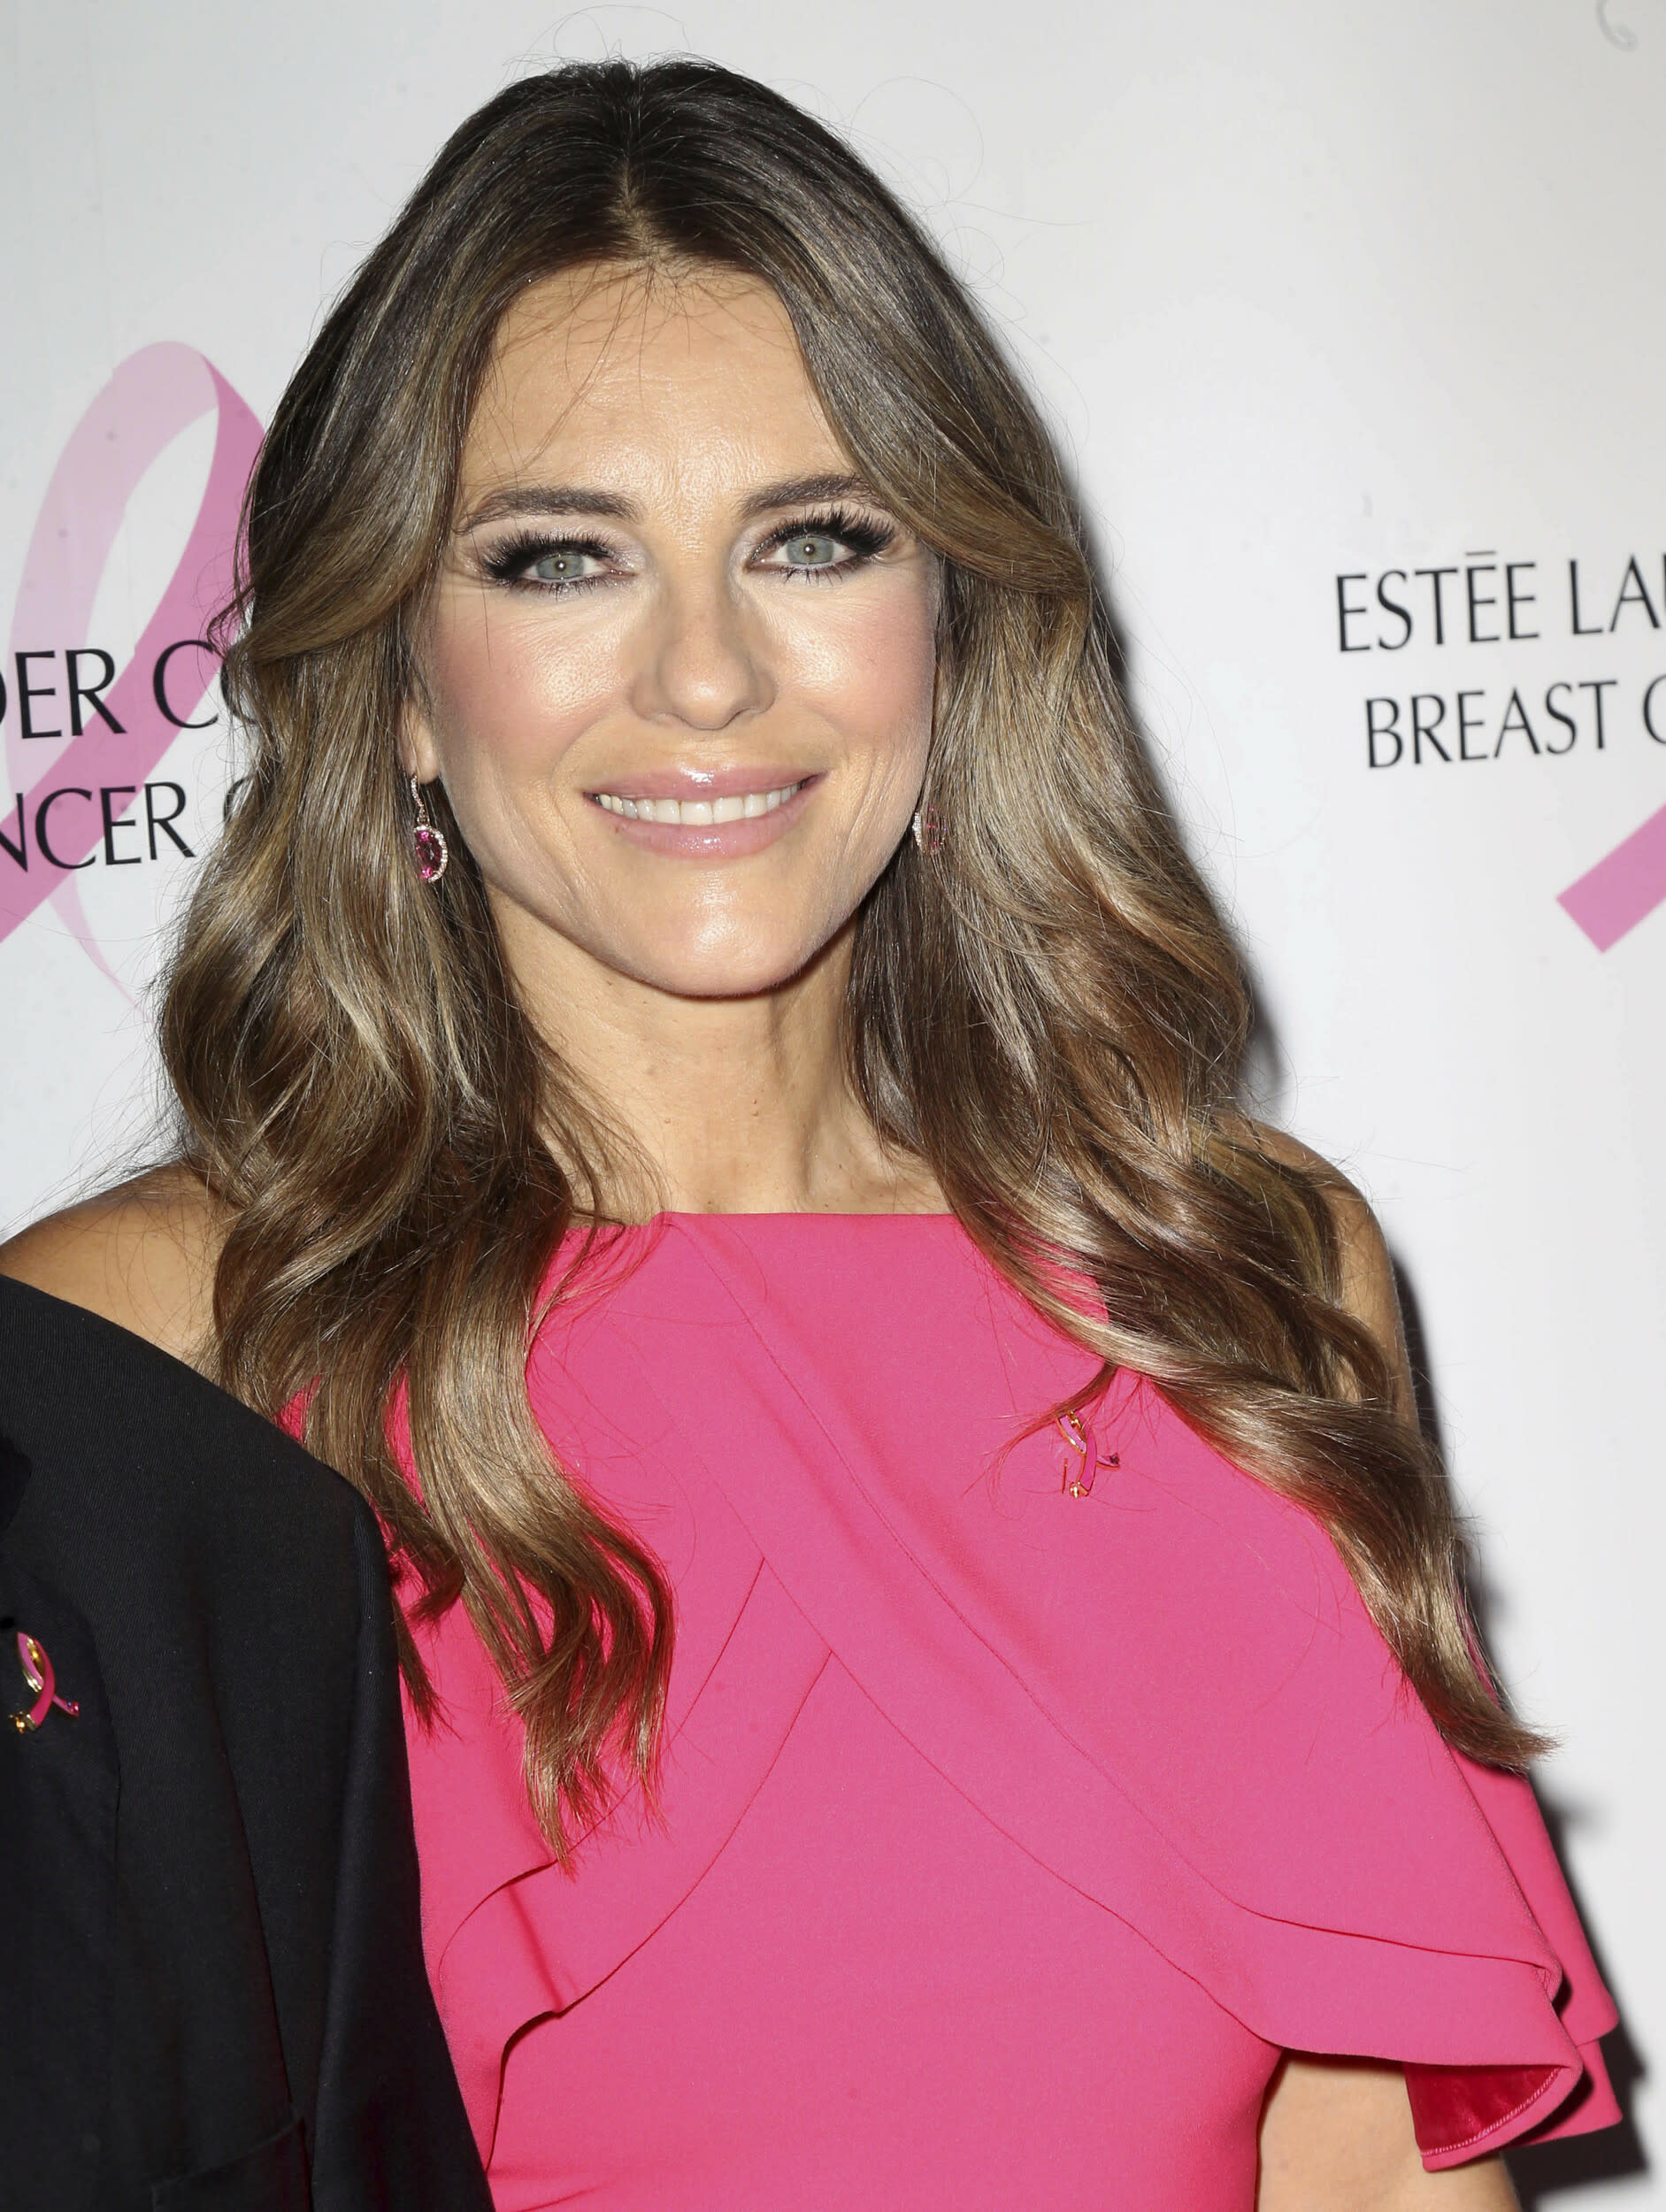 Photo by: KGC-146/STAR MAX/IPx 2018 10/1/18 Elizabeth Hurley at The Estee Lauder Companies Breast Cancer Campaign in New York City.